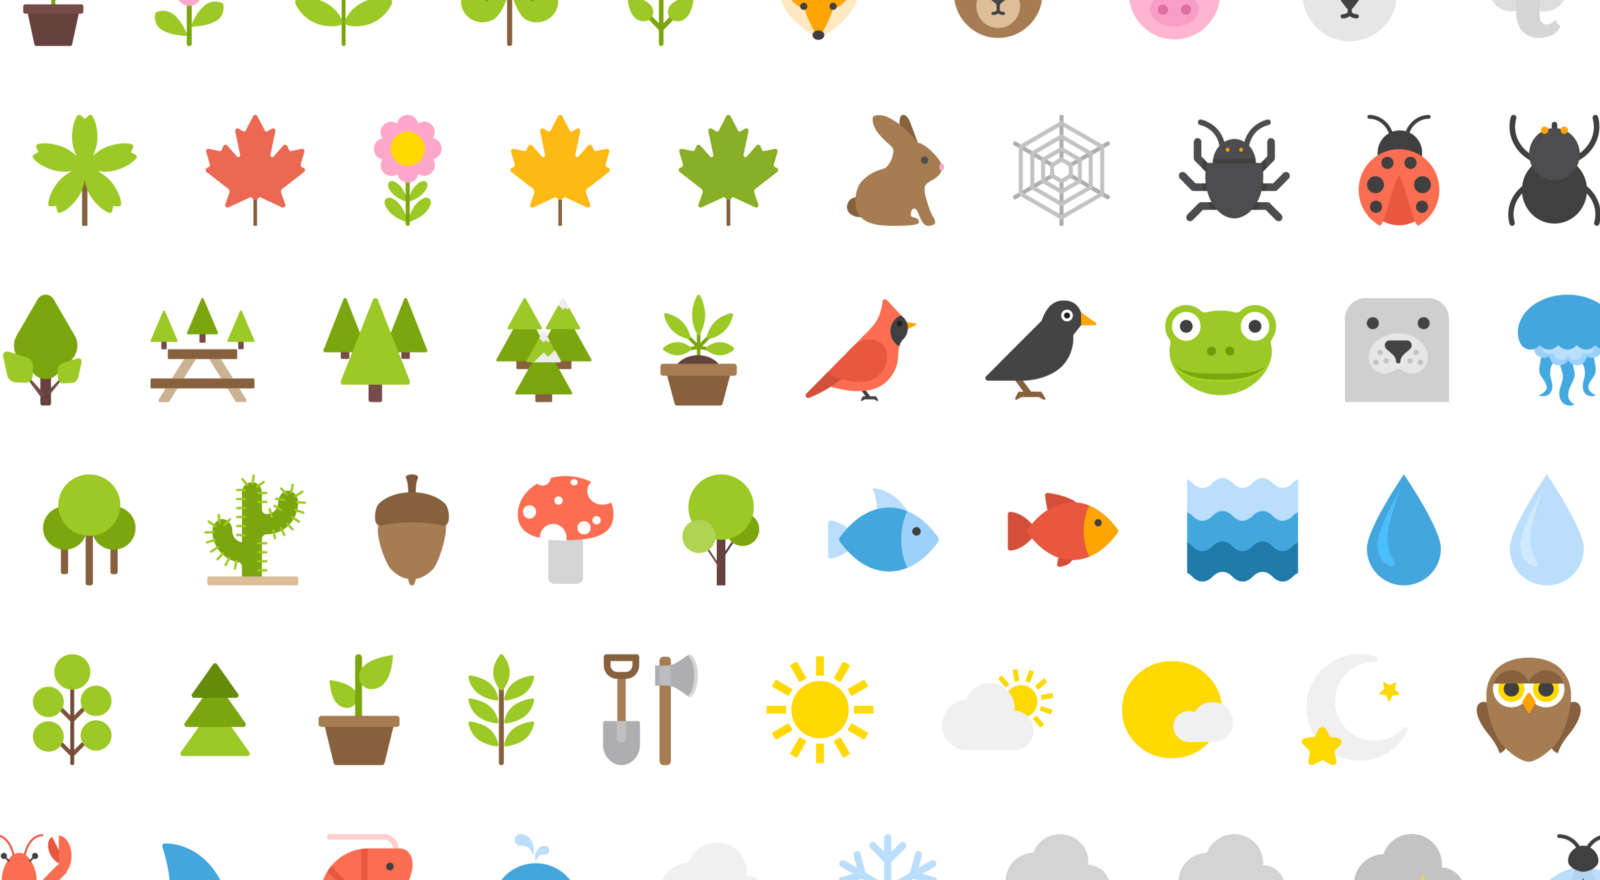 Free Download 100 Nature Icons by Vecteezy Icon design